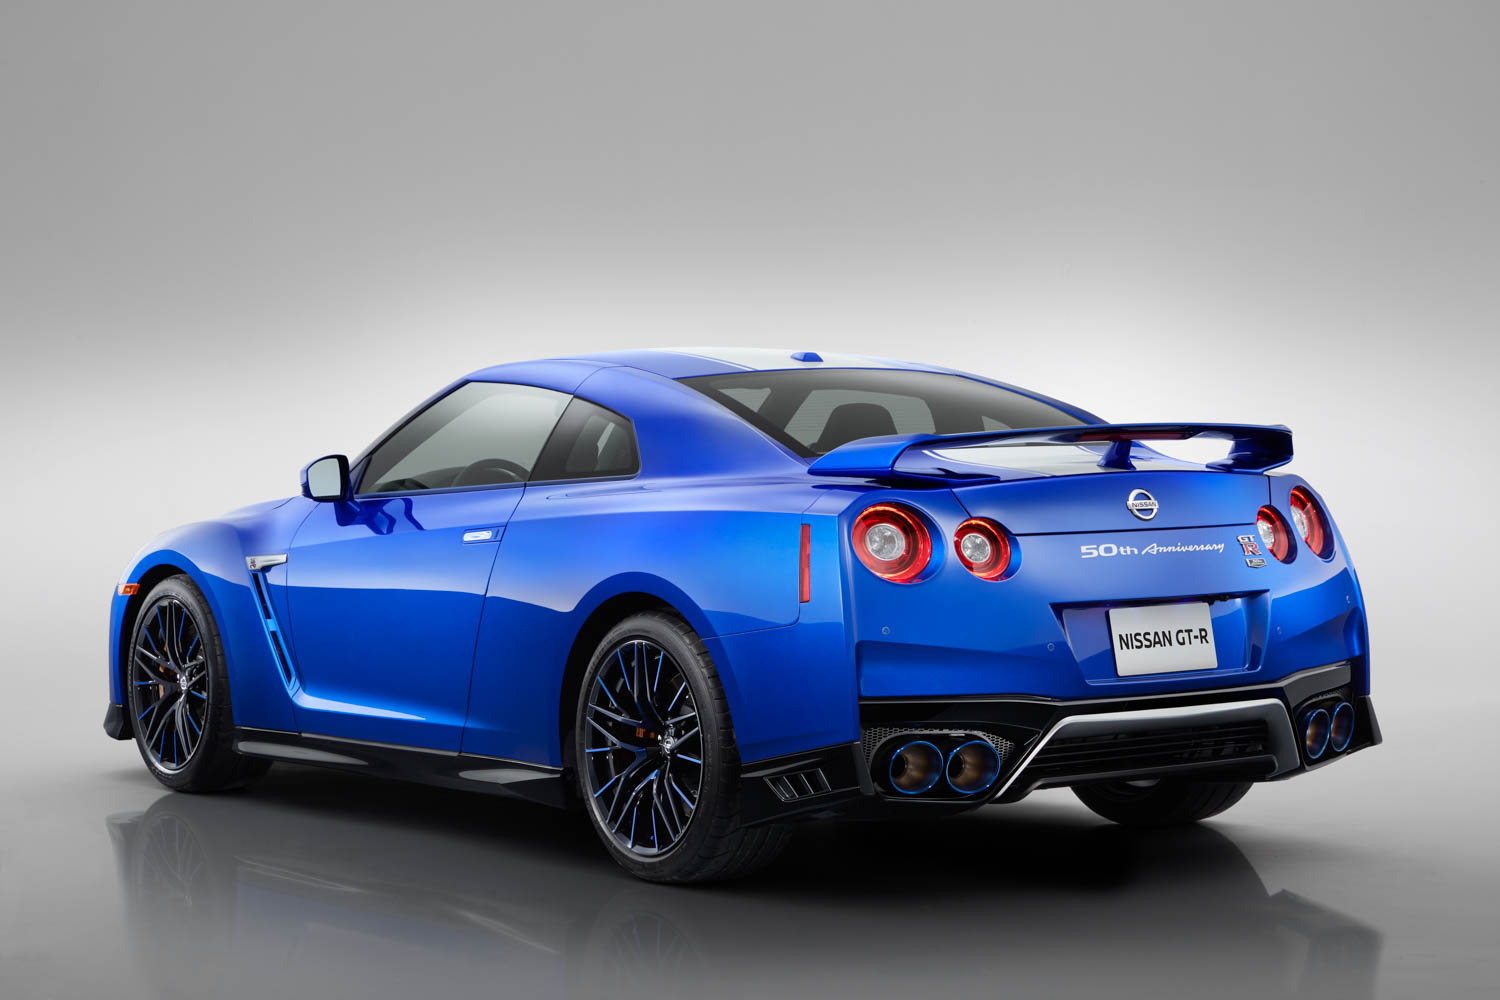 Nissan 50th Anniversary GT-R rear 3/4